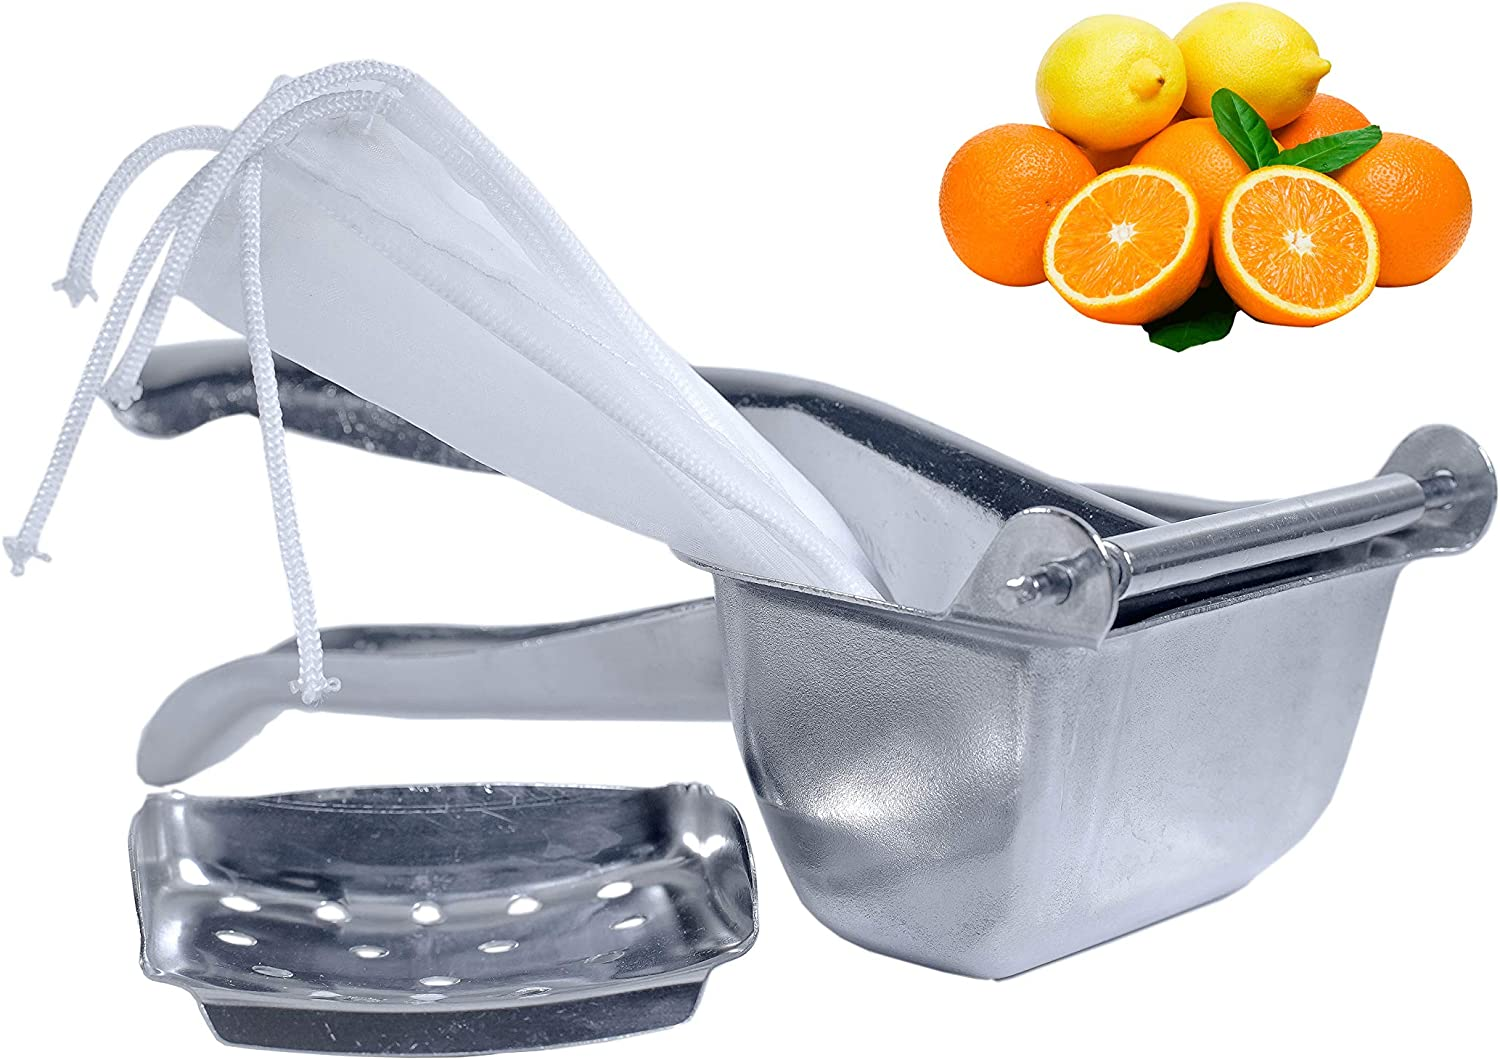 ELEV Stainless Steel Fruit Juicer – Handheld Fruit Press – Juicer Hand Press with 2 Fruit Bags Included – Easy to Wash and Use – Rustproof and Food-Grade – Ideal for Oranges, Lemons, Lime, Grapes